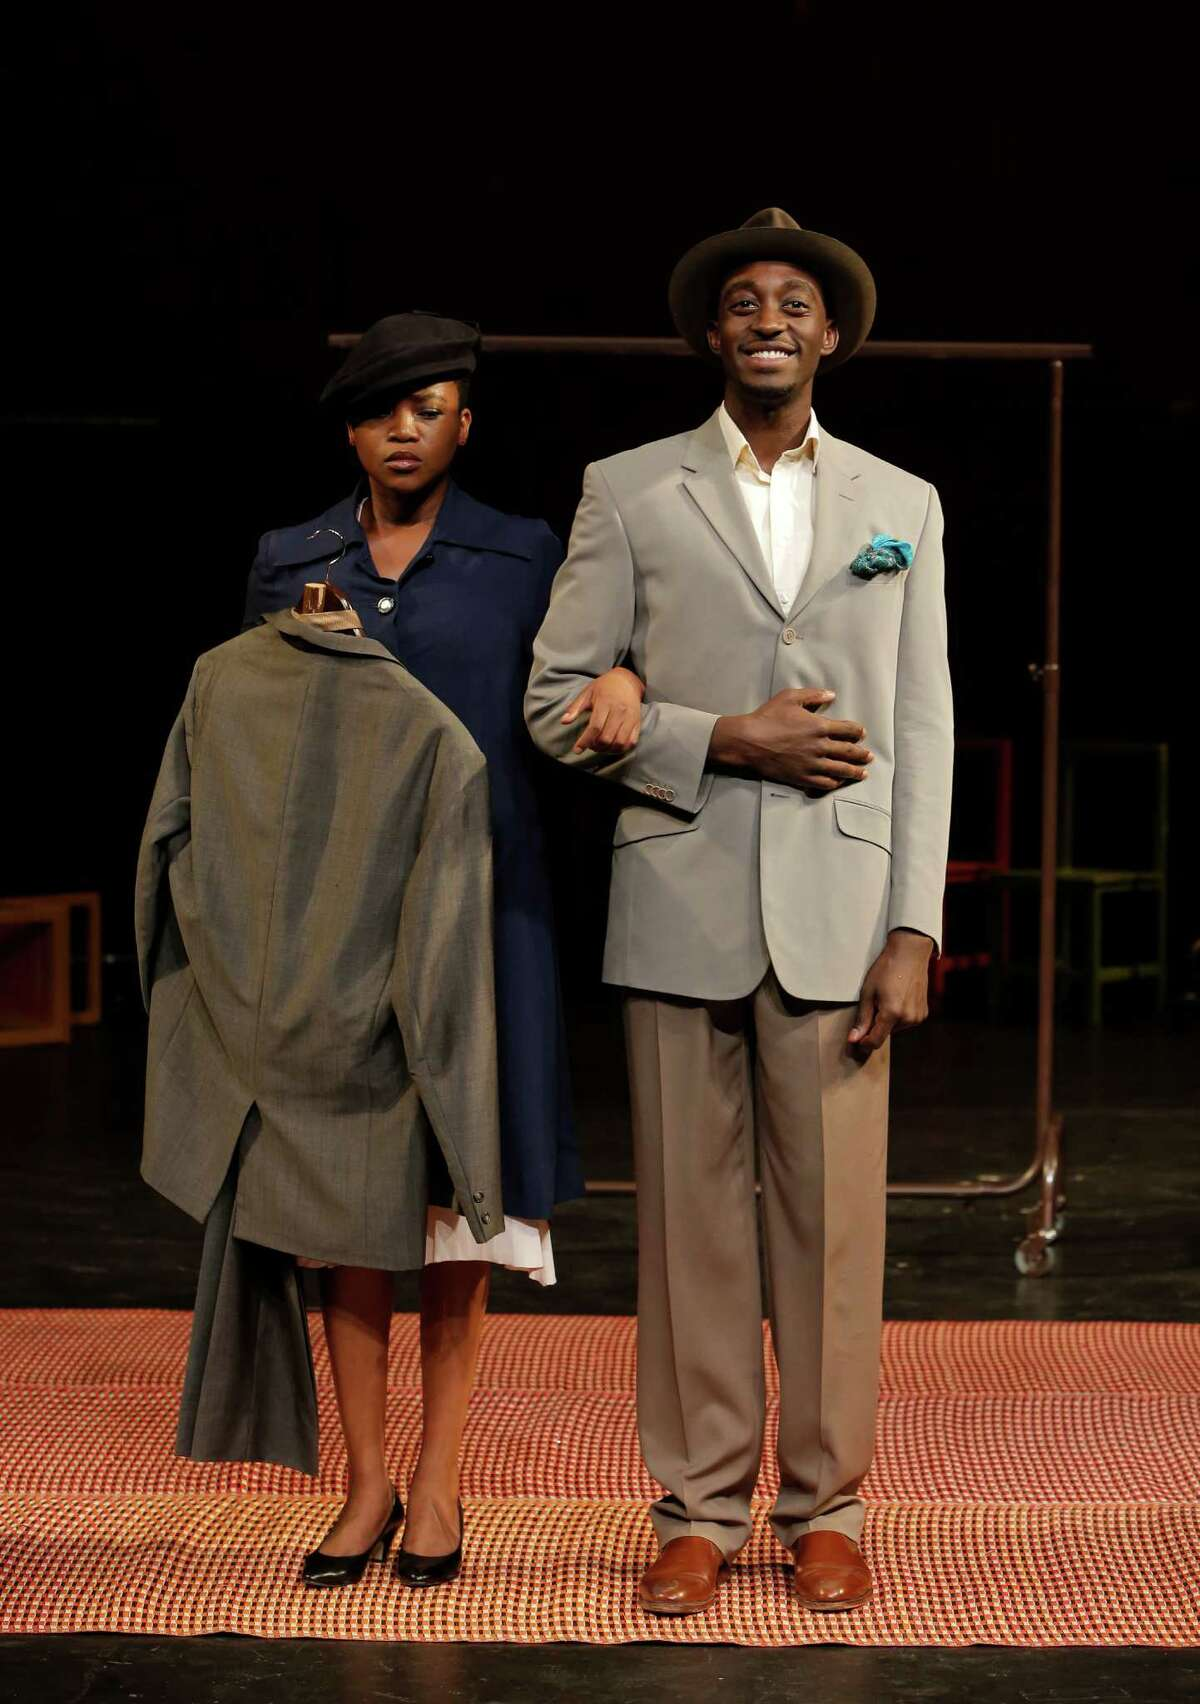 """Matilda (Nonhlanhla Kheswa, left) carries the suit left behind by her lover when she walks with her husband Philemon (Ivanno Jeremiah) in """"The Suit"""" at American Conservatory Theater, which won the top imported-production honor for the Peter Brook play."""